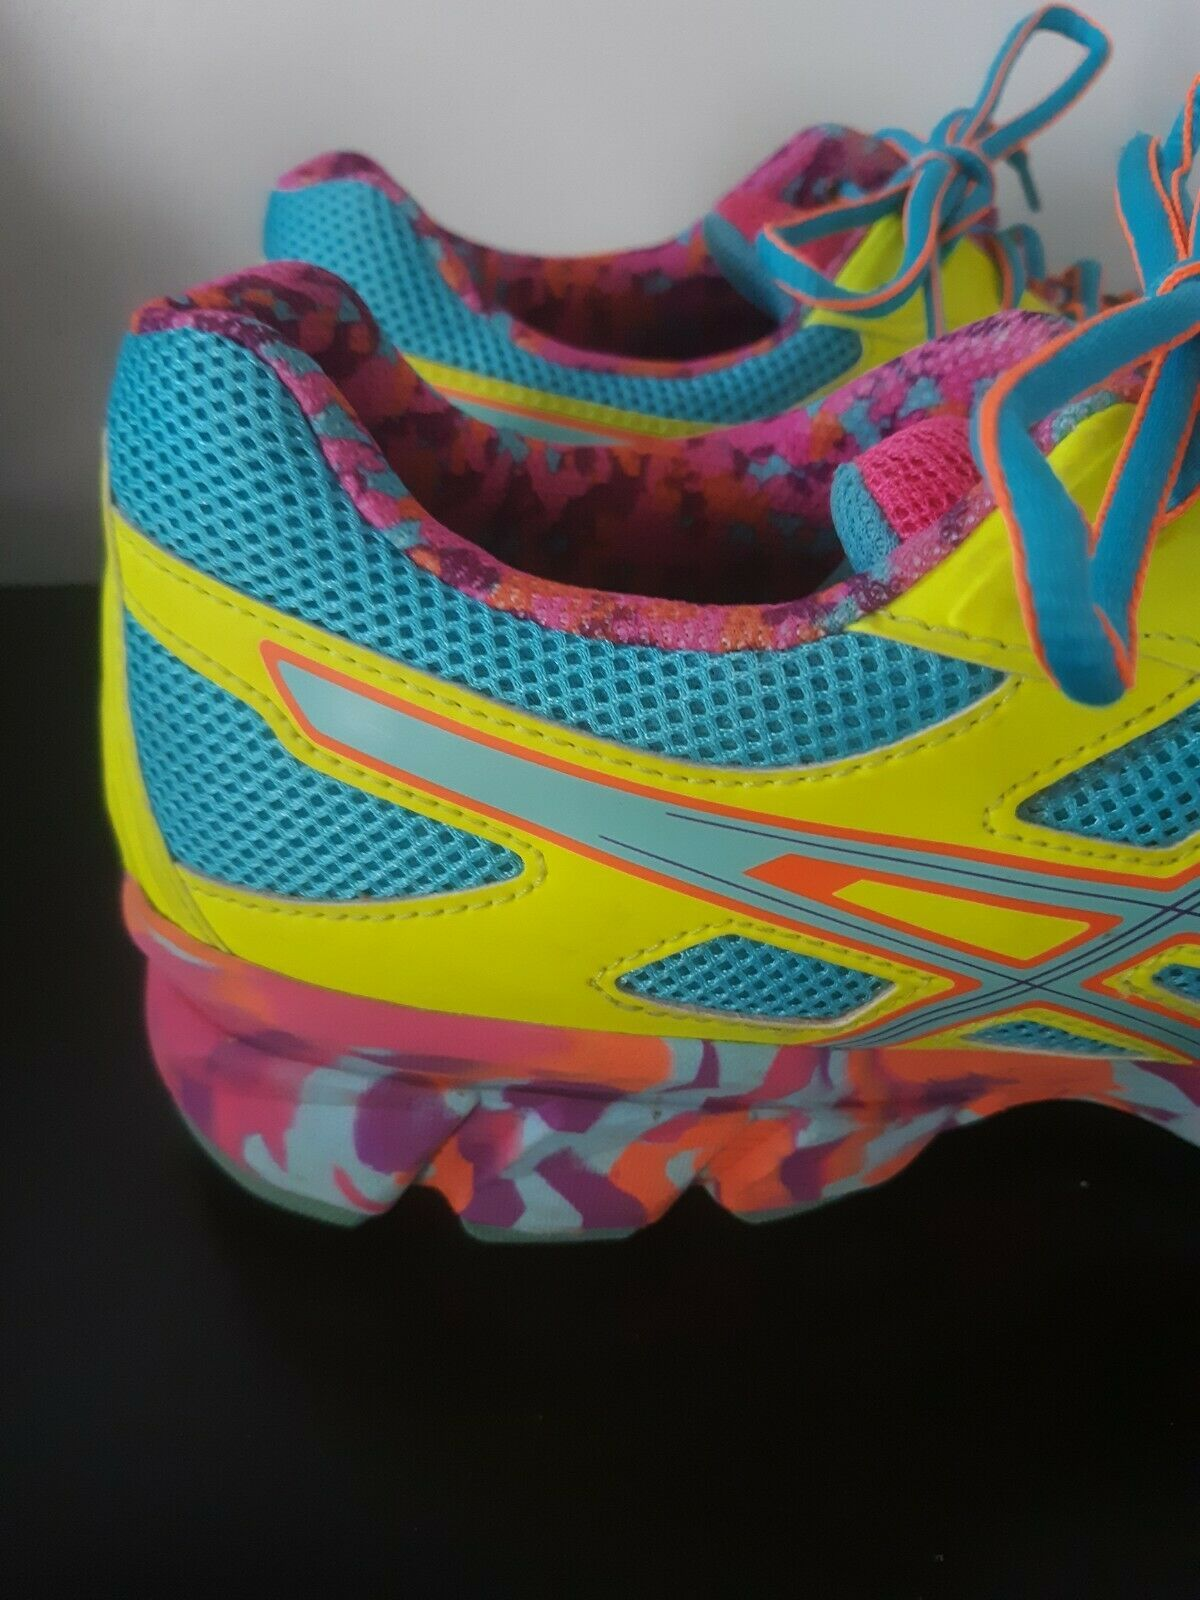 Asics Gel Franctic 7 Sneakers Shoes Running Training Size 10 Womens Multi Color image 4